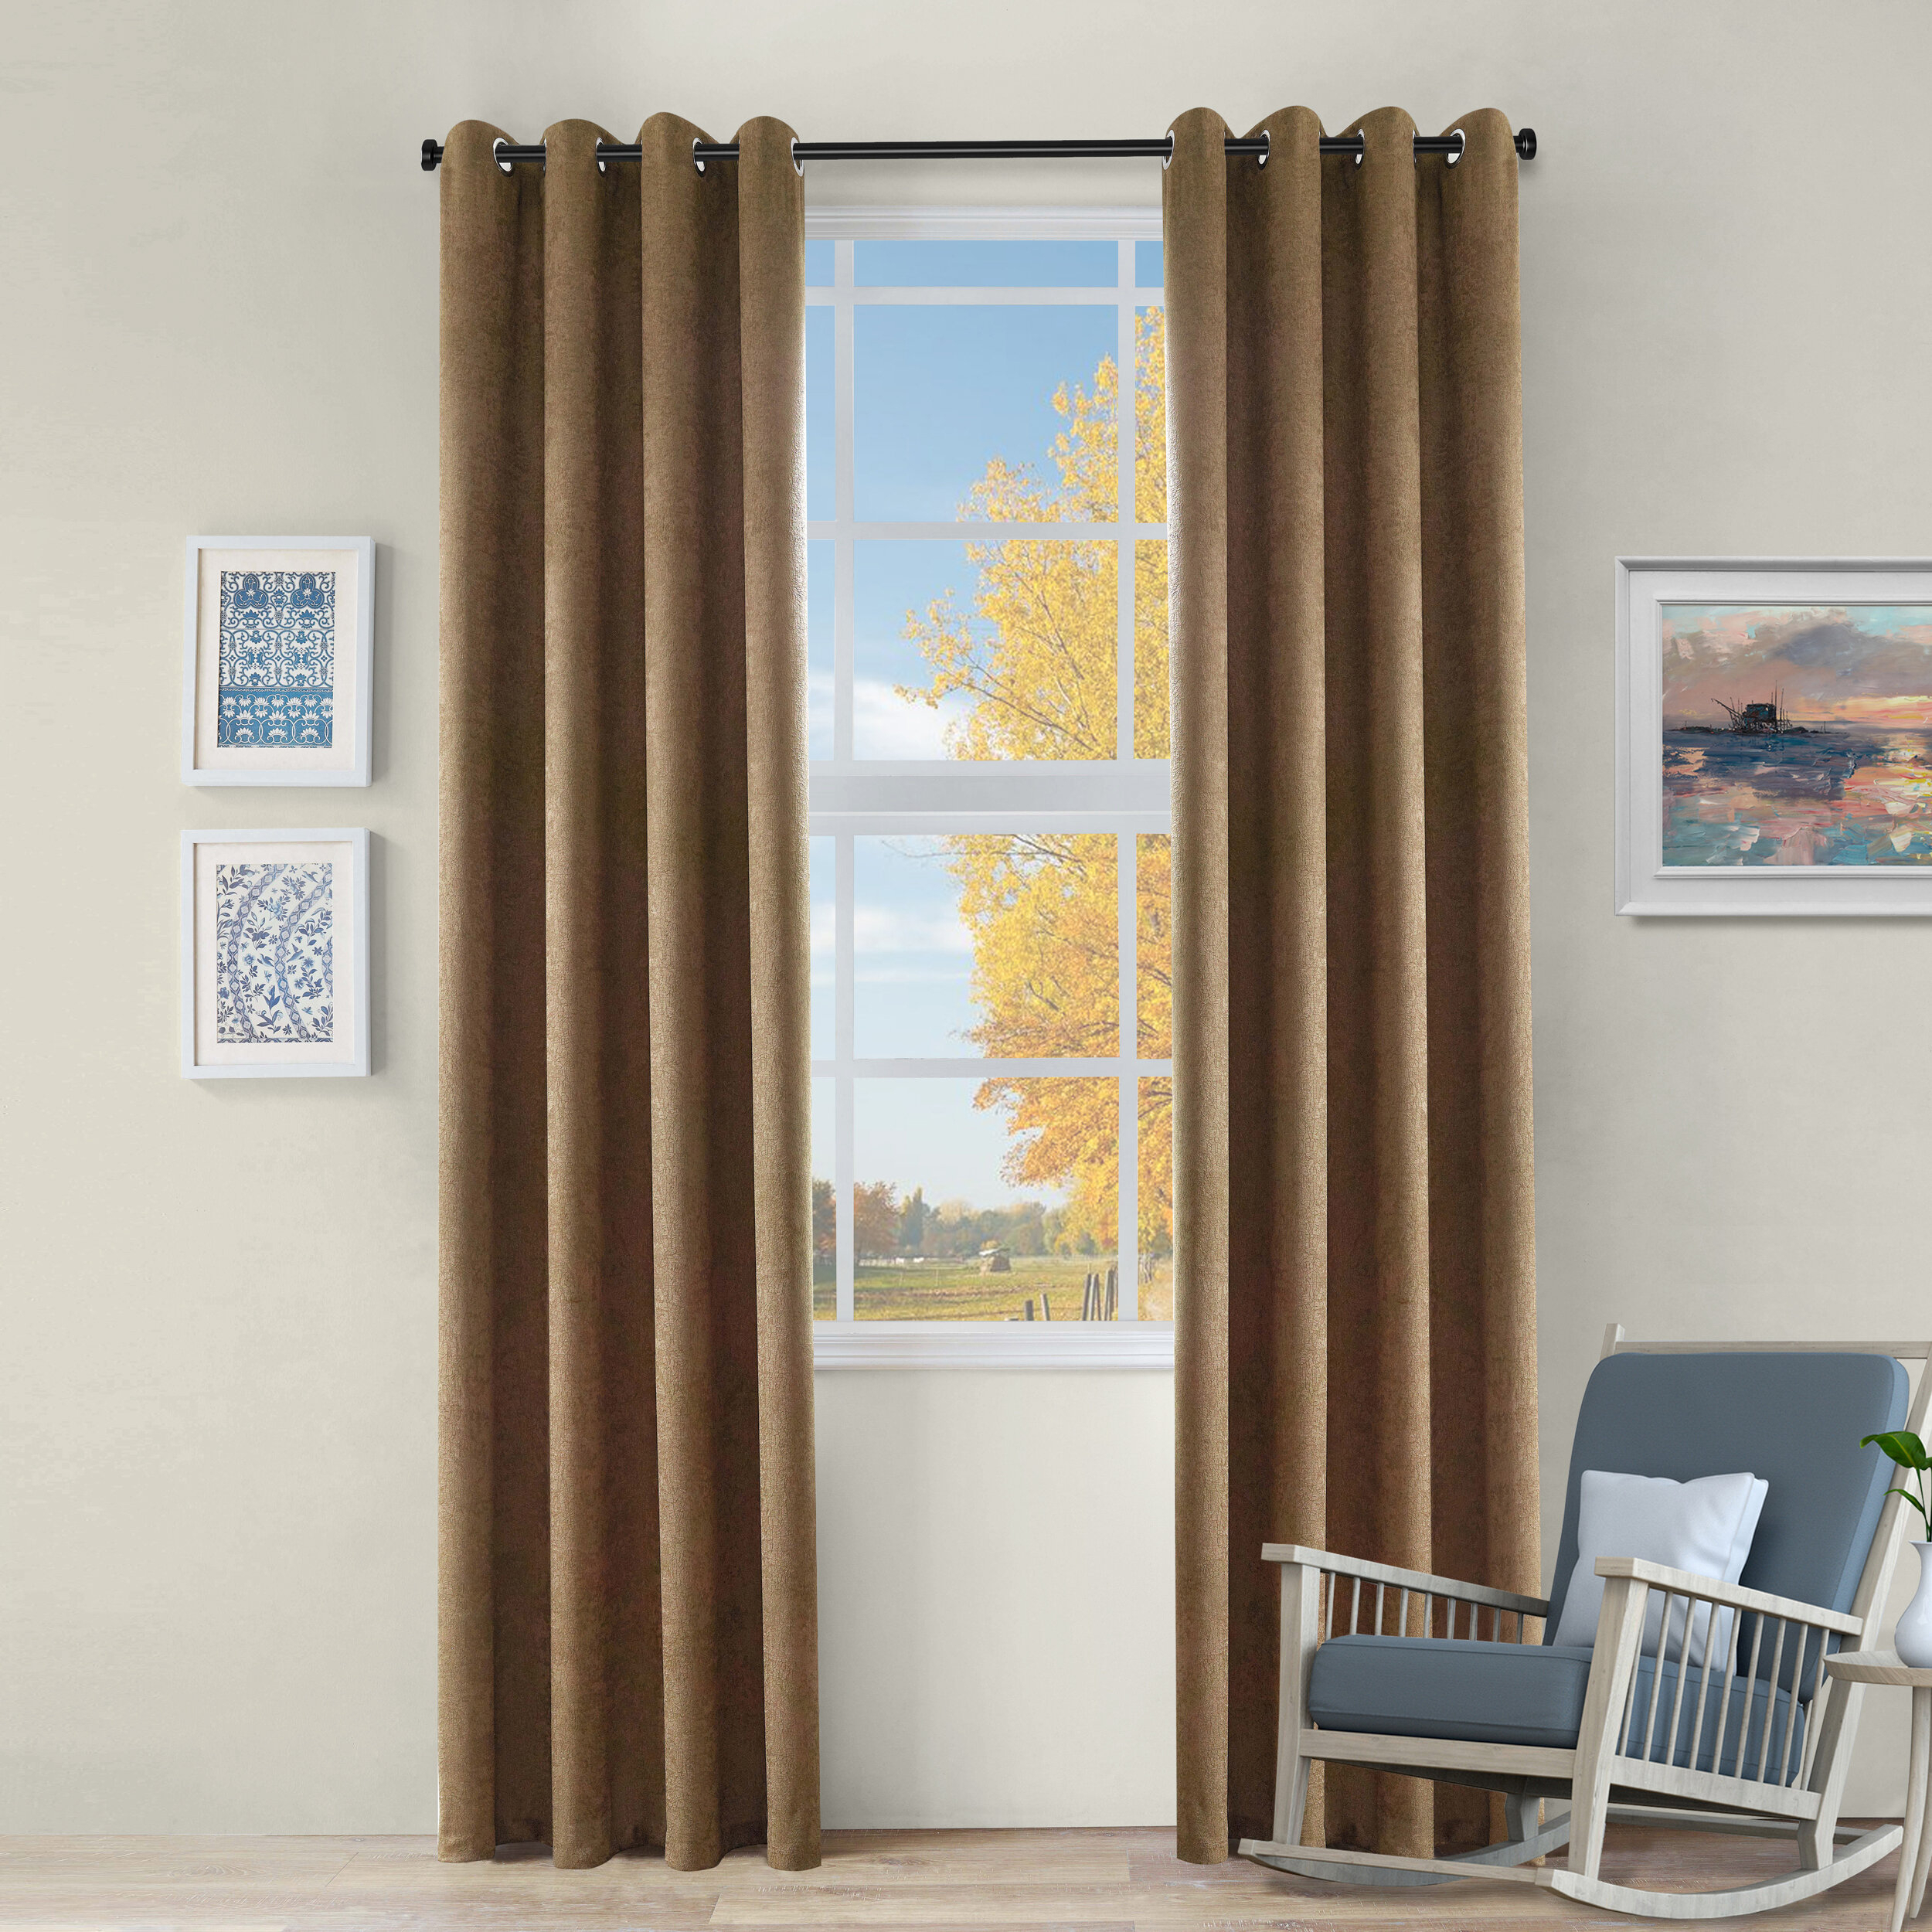 Ivy Bronx Cherri Solid Color Blackout Thermal Grommet Panel Inside Solid Insulated Thermal Blackout Curtain Panel Pairs (View 19 of 30)